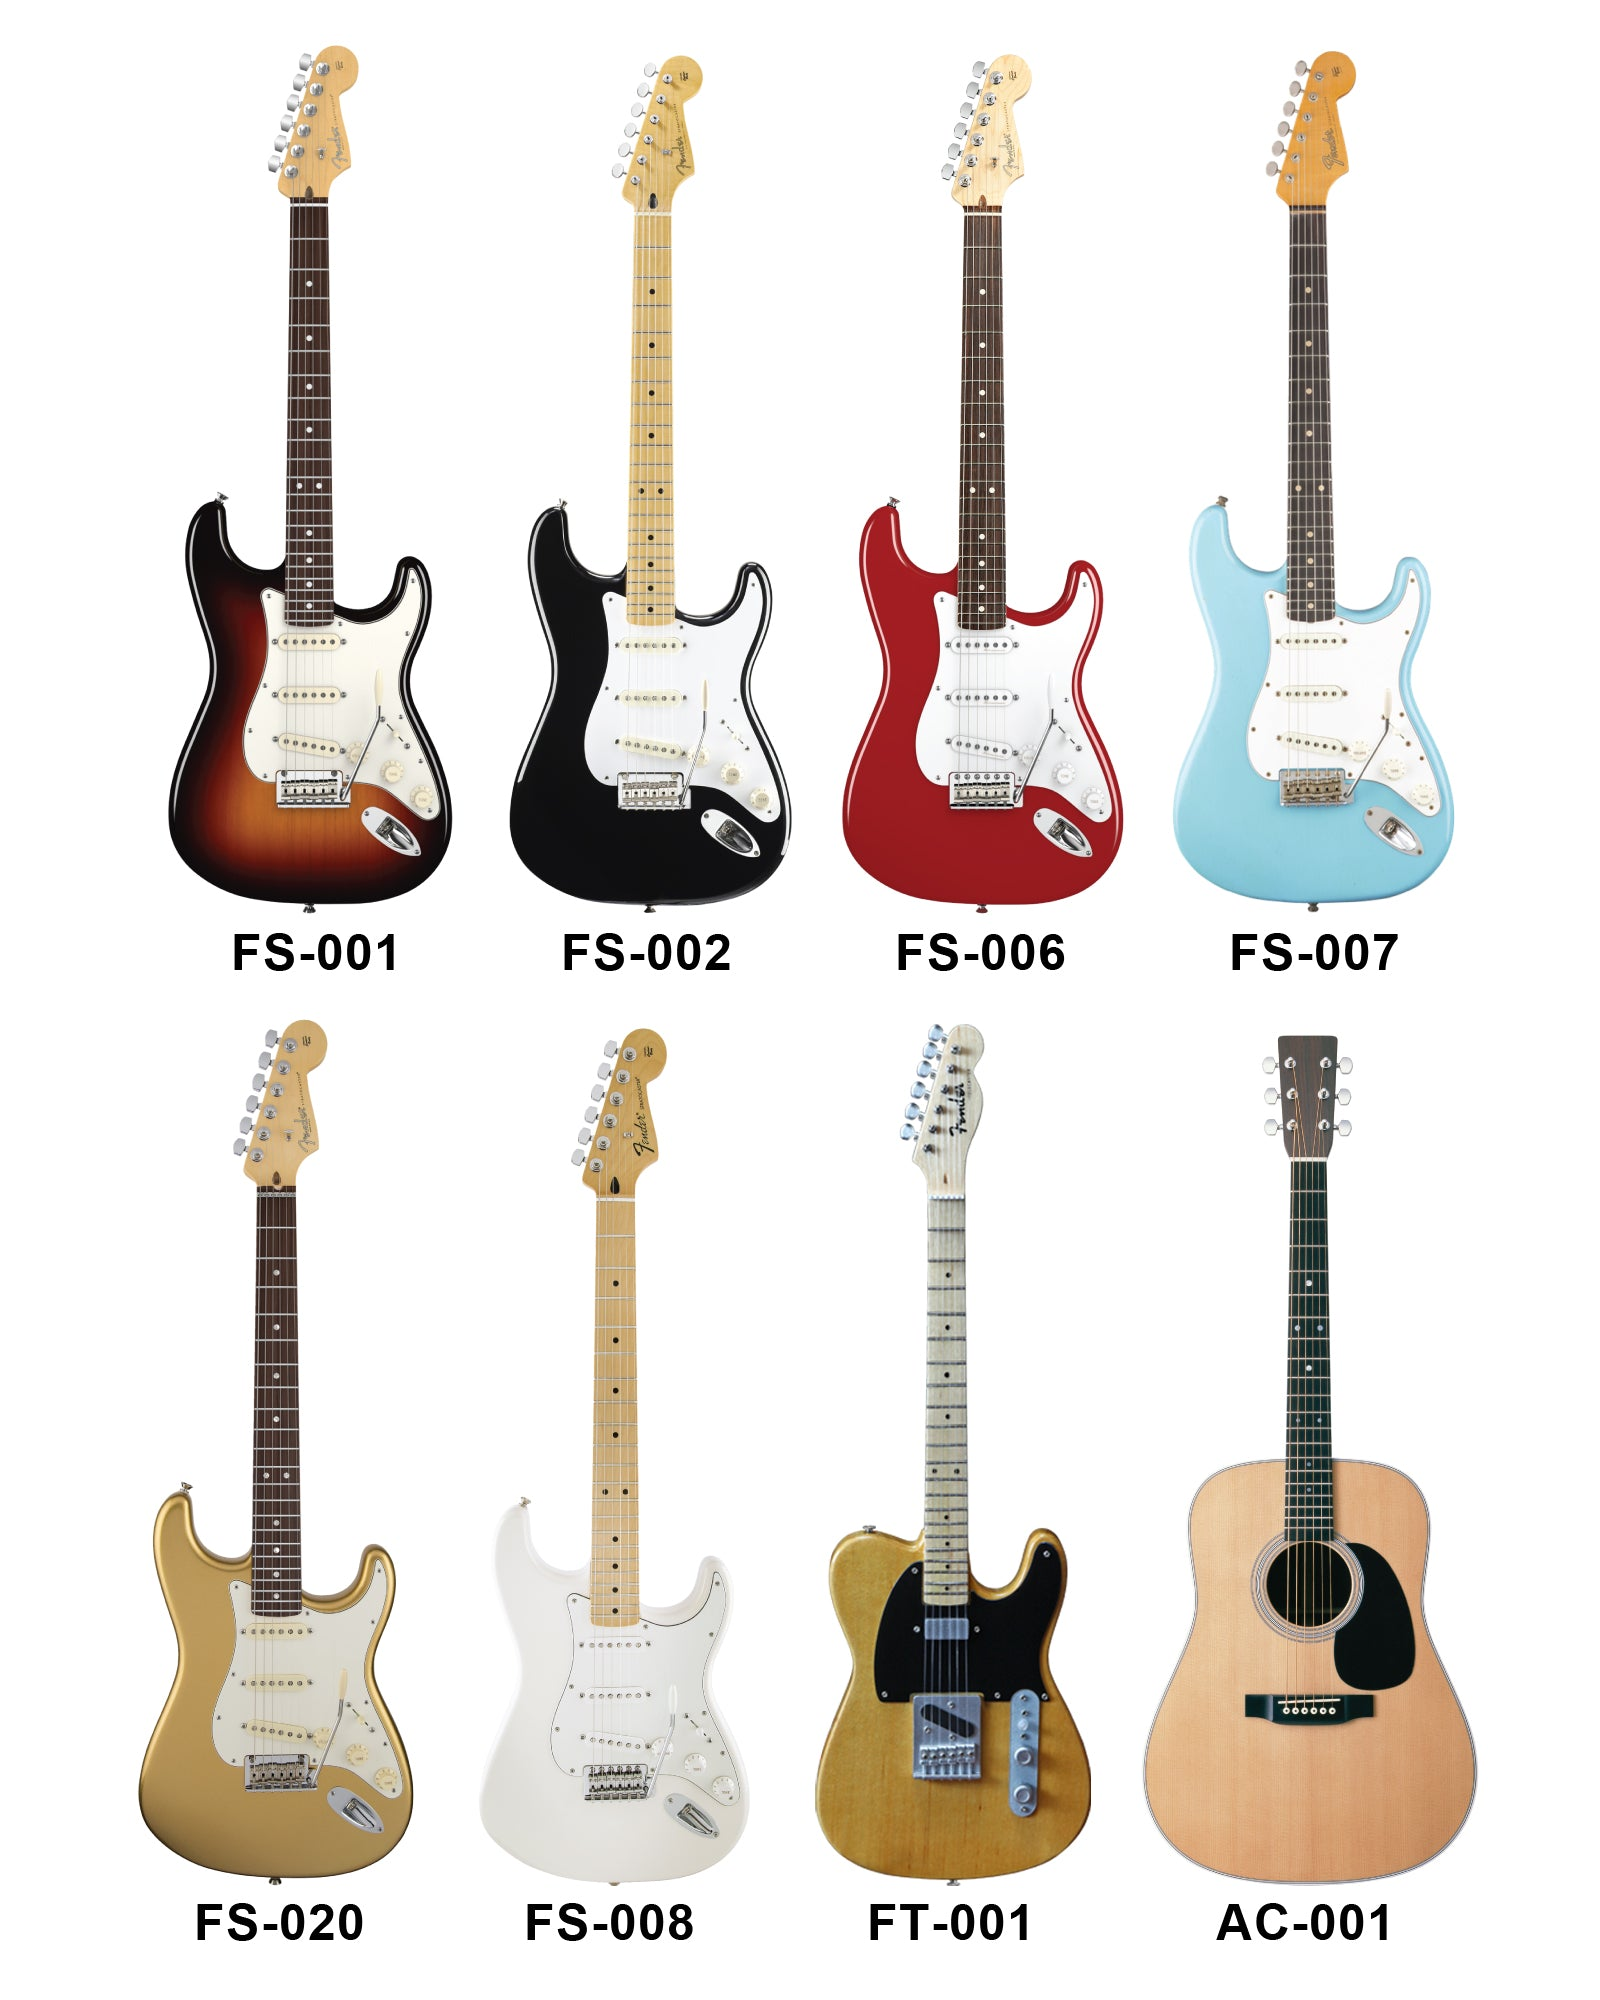 MINI GUITAR OPTIONS for ROCKSTAR AWARD